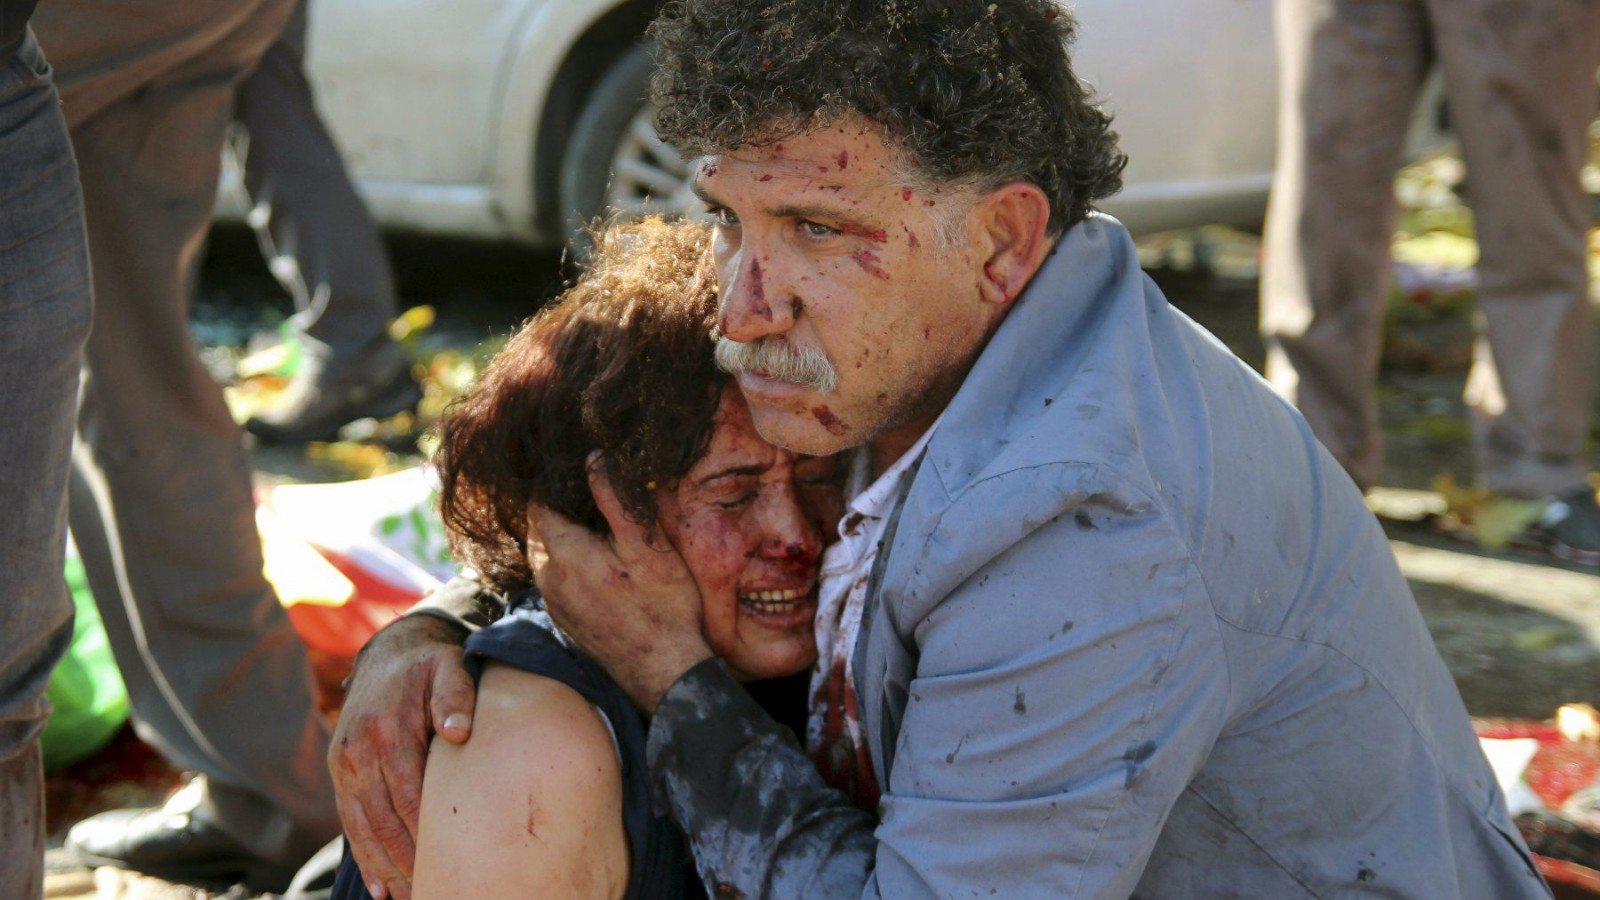 An injured man hugs an injured woman after an explosion during a peace march in Ankara, Turkey.